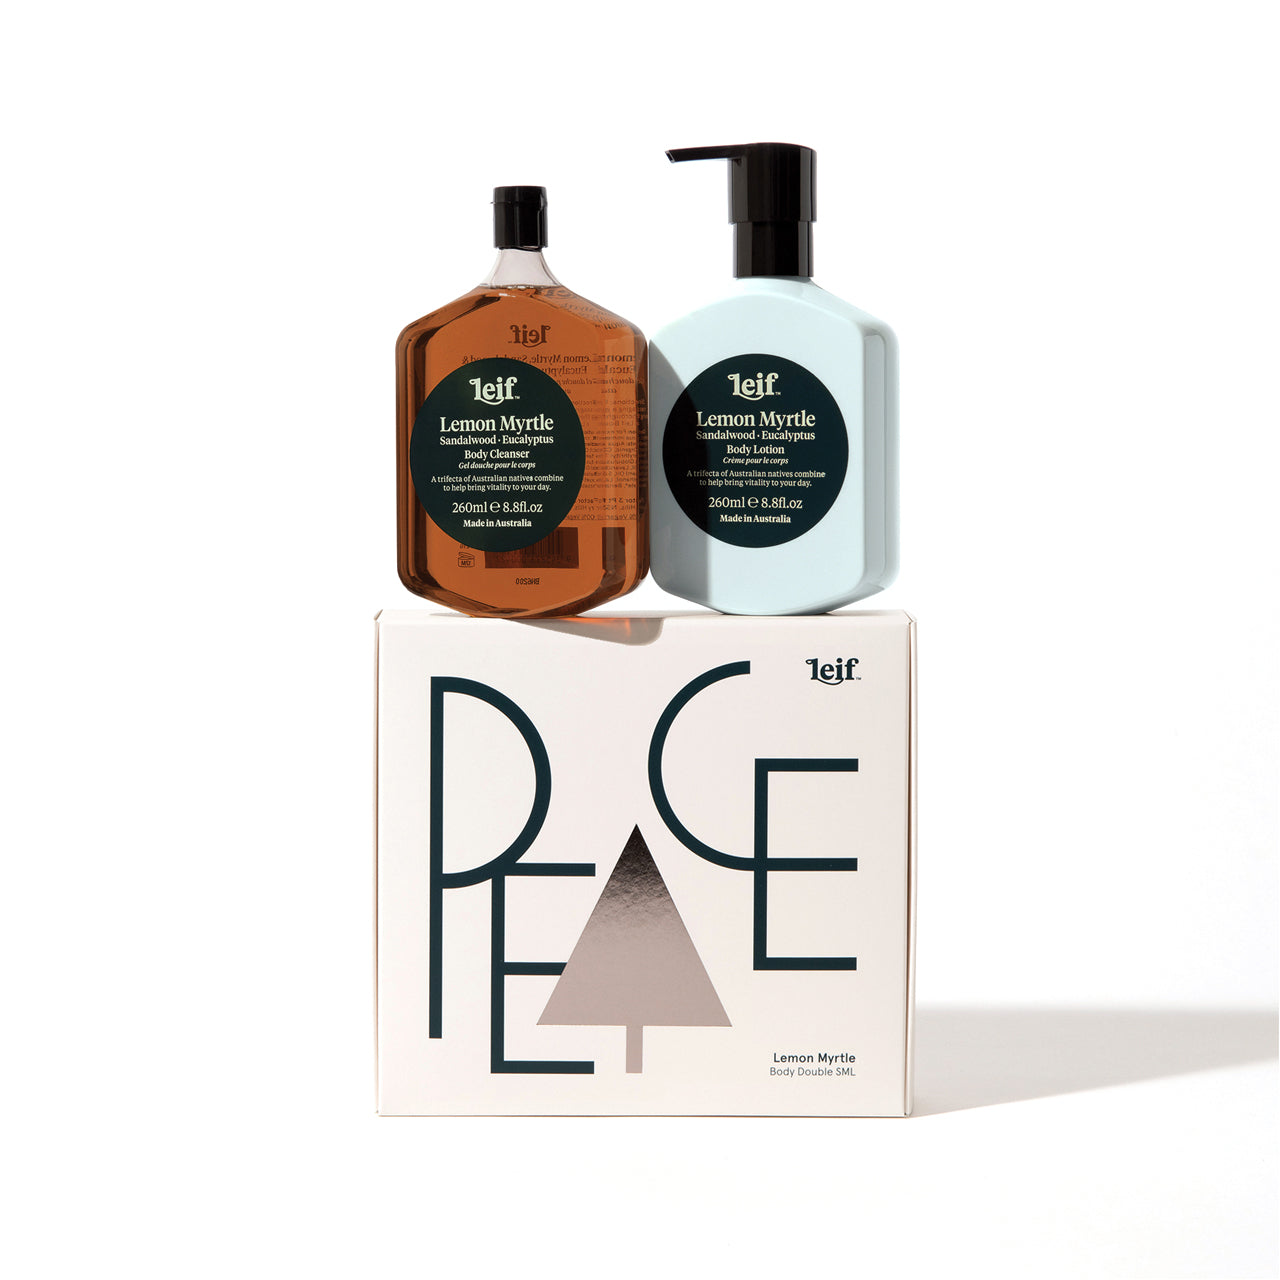 Leif - 'PEACE' Body Double Gift Set - Small - 260ml Body Cleanser & 260ml Body Lotion - Lemon Myrtle